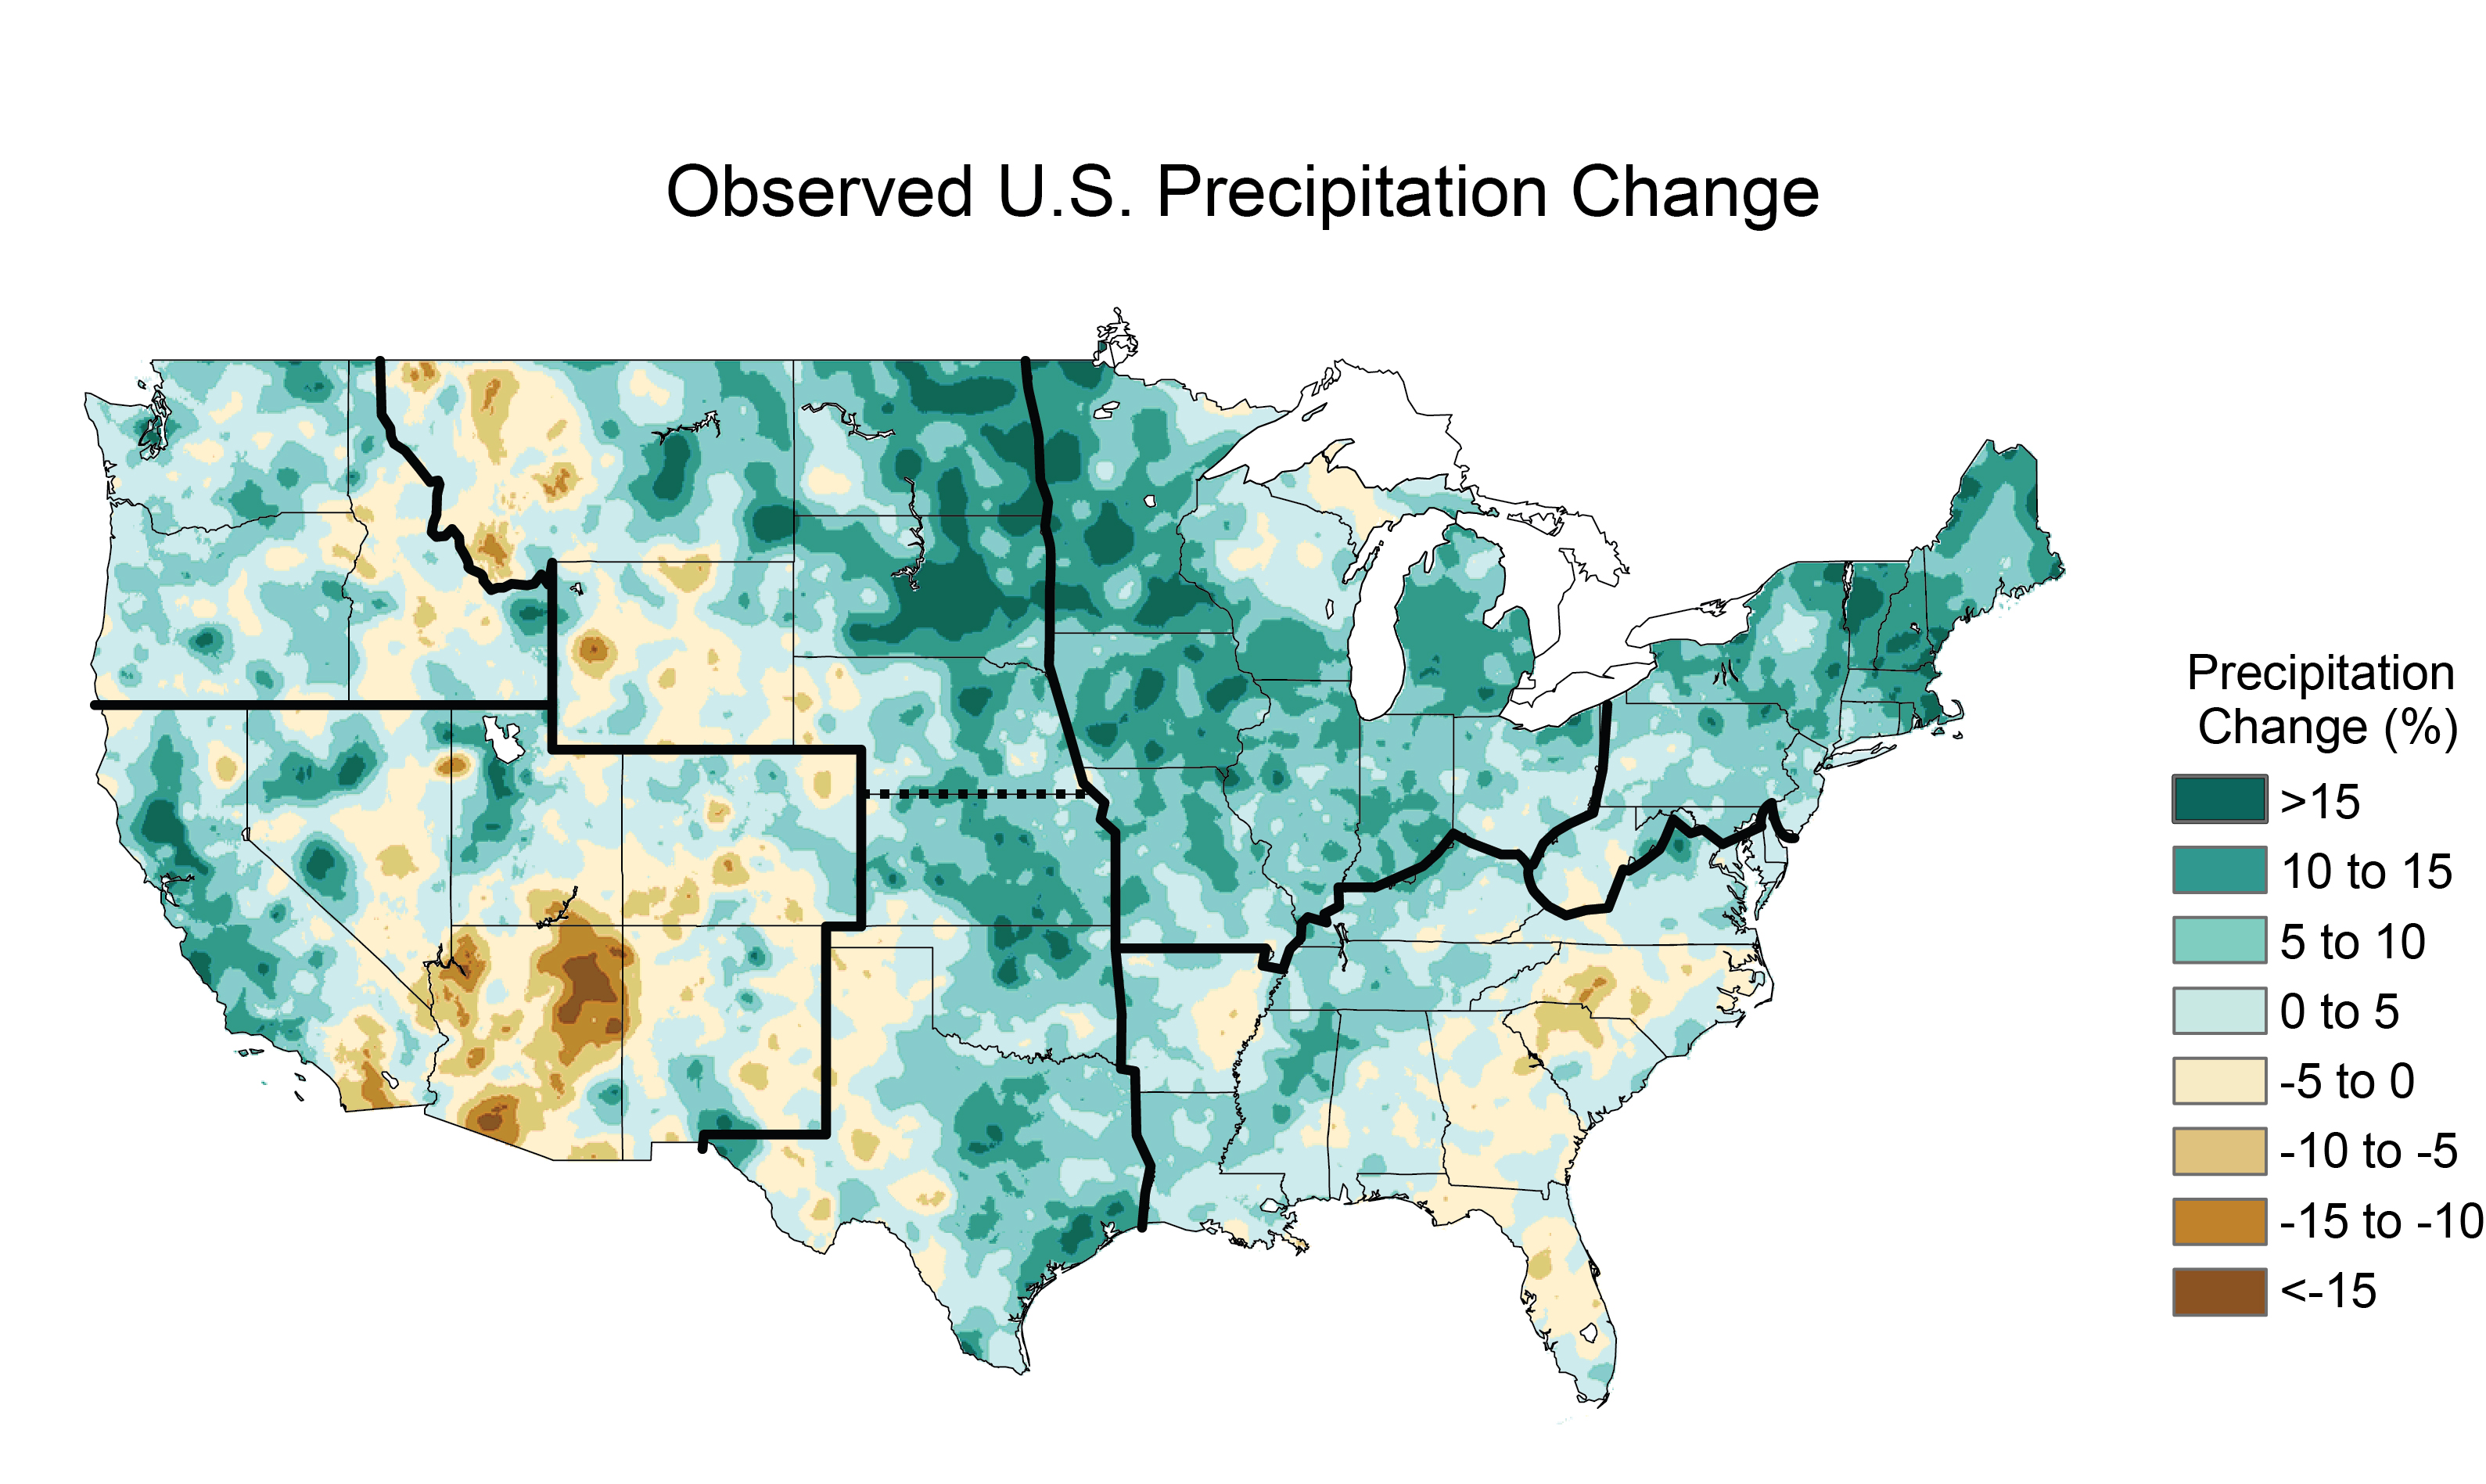 Climate Changes In The United States Image Of The Day - Average temp map us